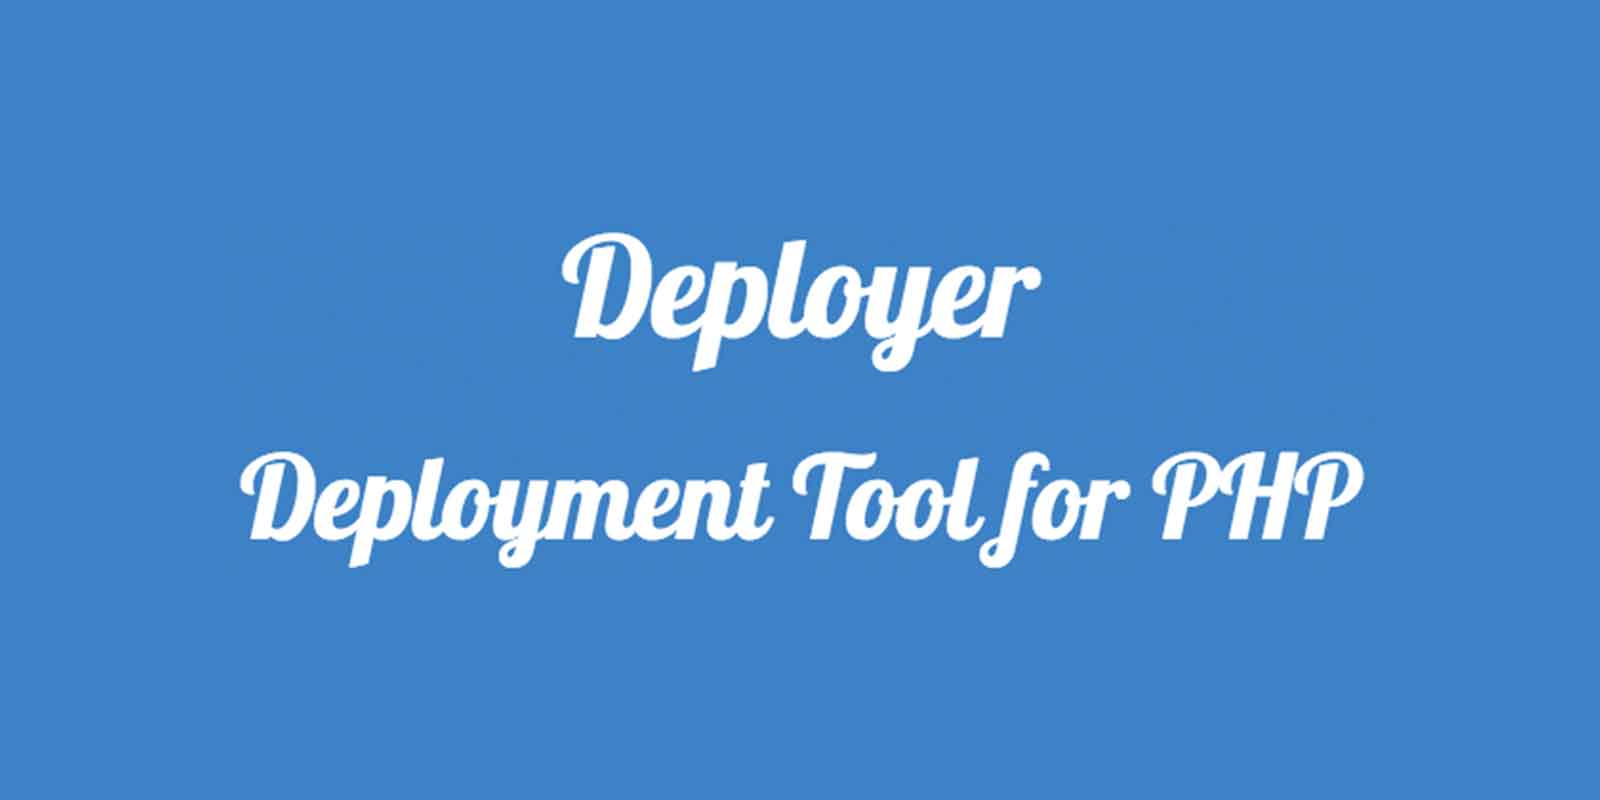 Deployer Easy Php Deployment on Easy Php